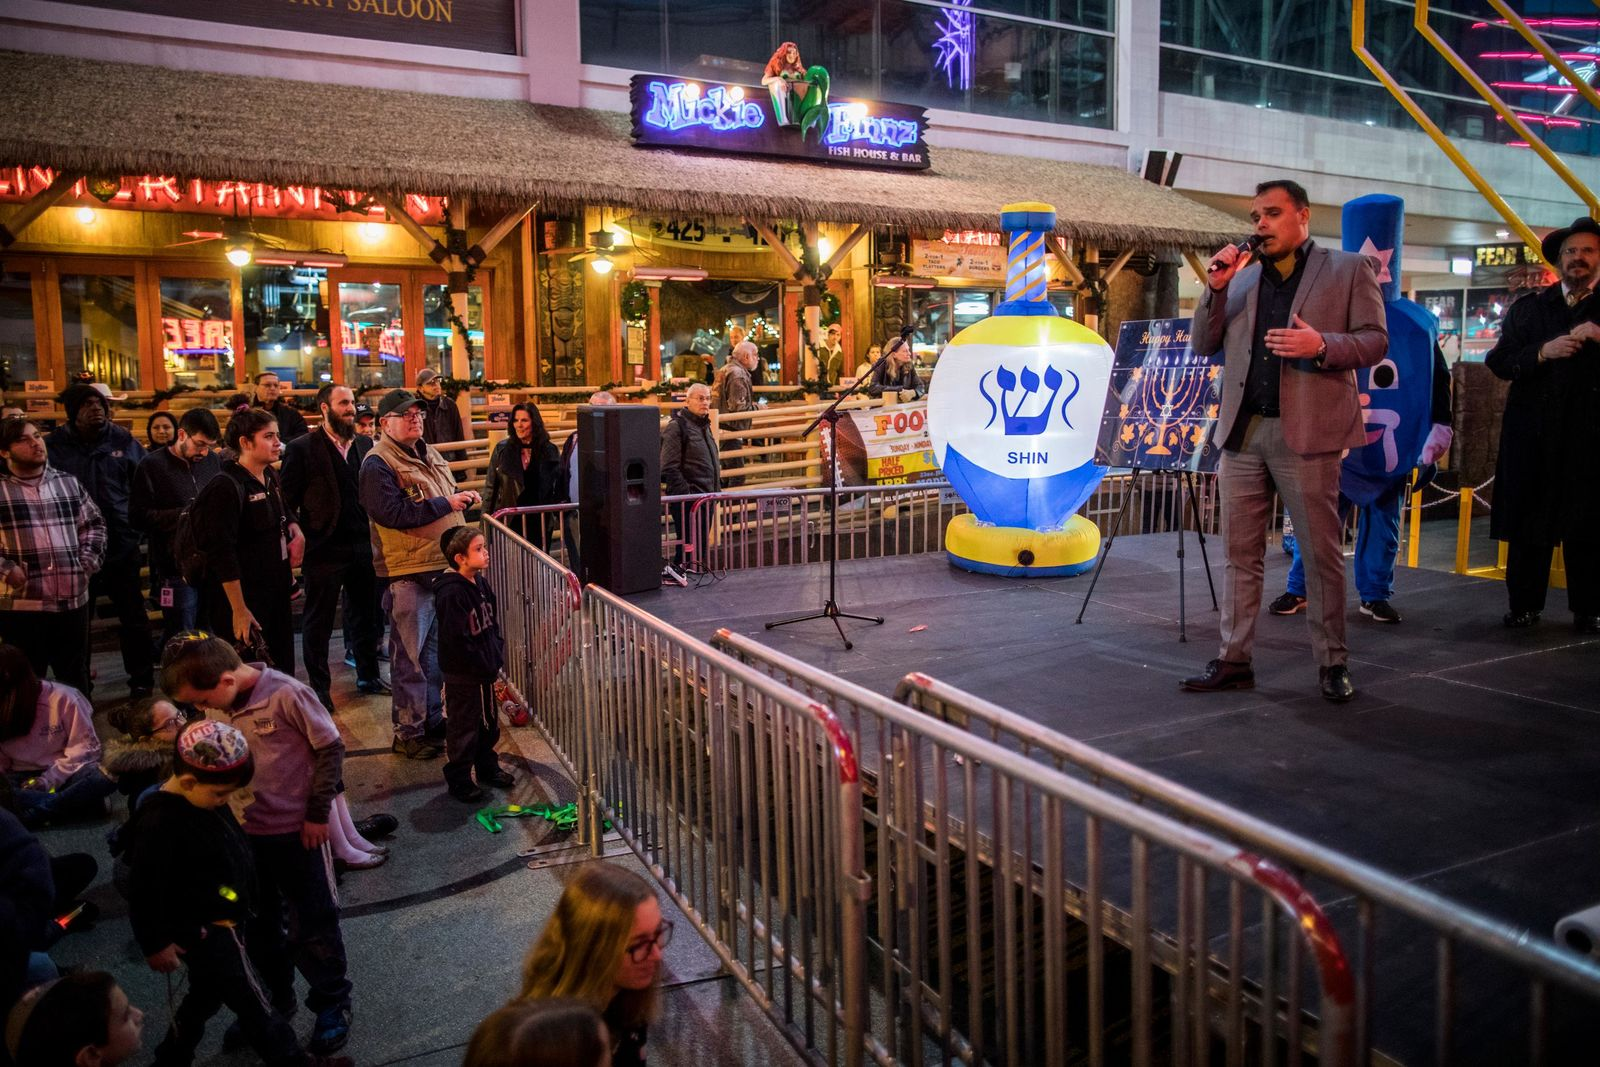 Chief Marketing Officer of Fremont Street Experience Paul McGuire speaks before the lighting of the Grand Menorah in downtown Las Vegas on Sunday, Dec. 2. The Grand Menorah will remain on display throughout the Hanukkah season. CREDIT: Joe Buglewicz/Las Vegas News Bureau